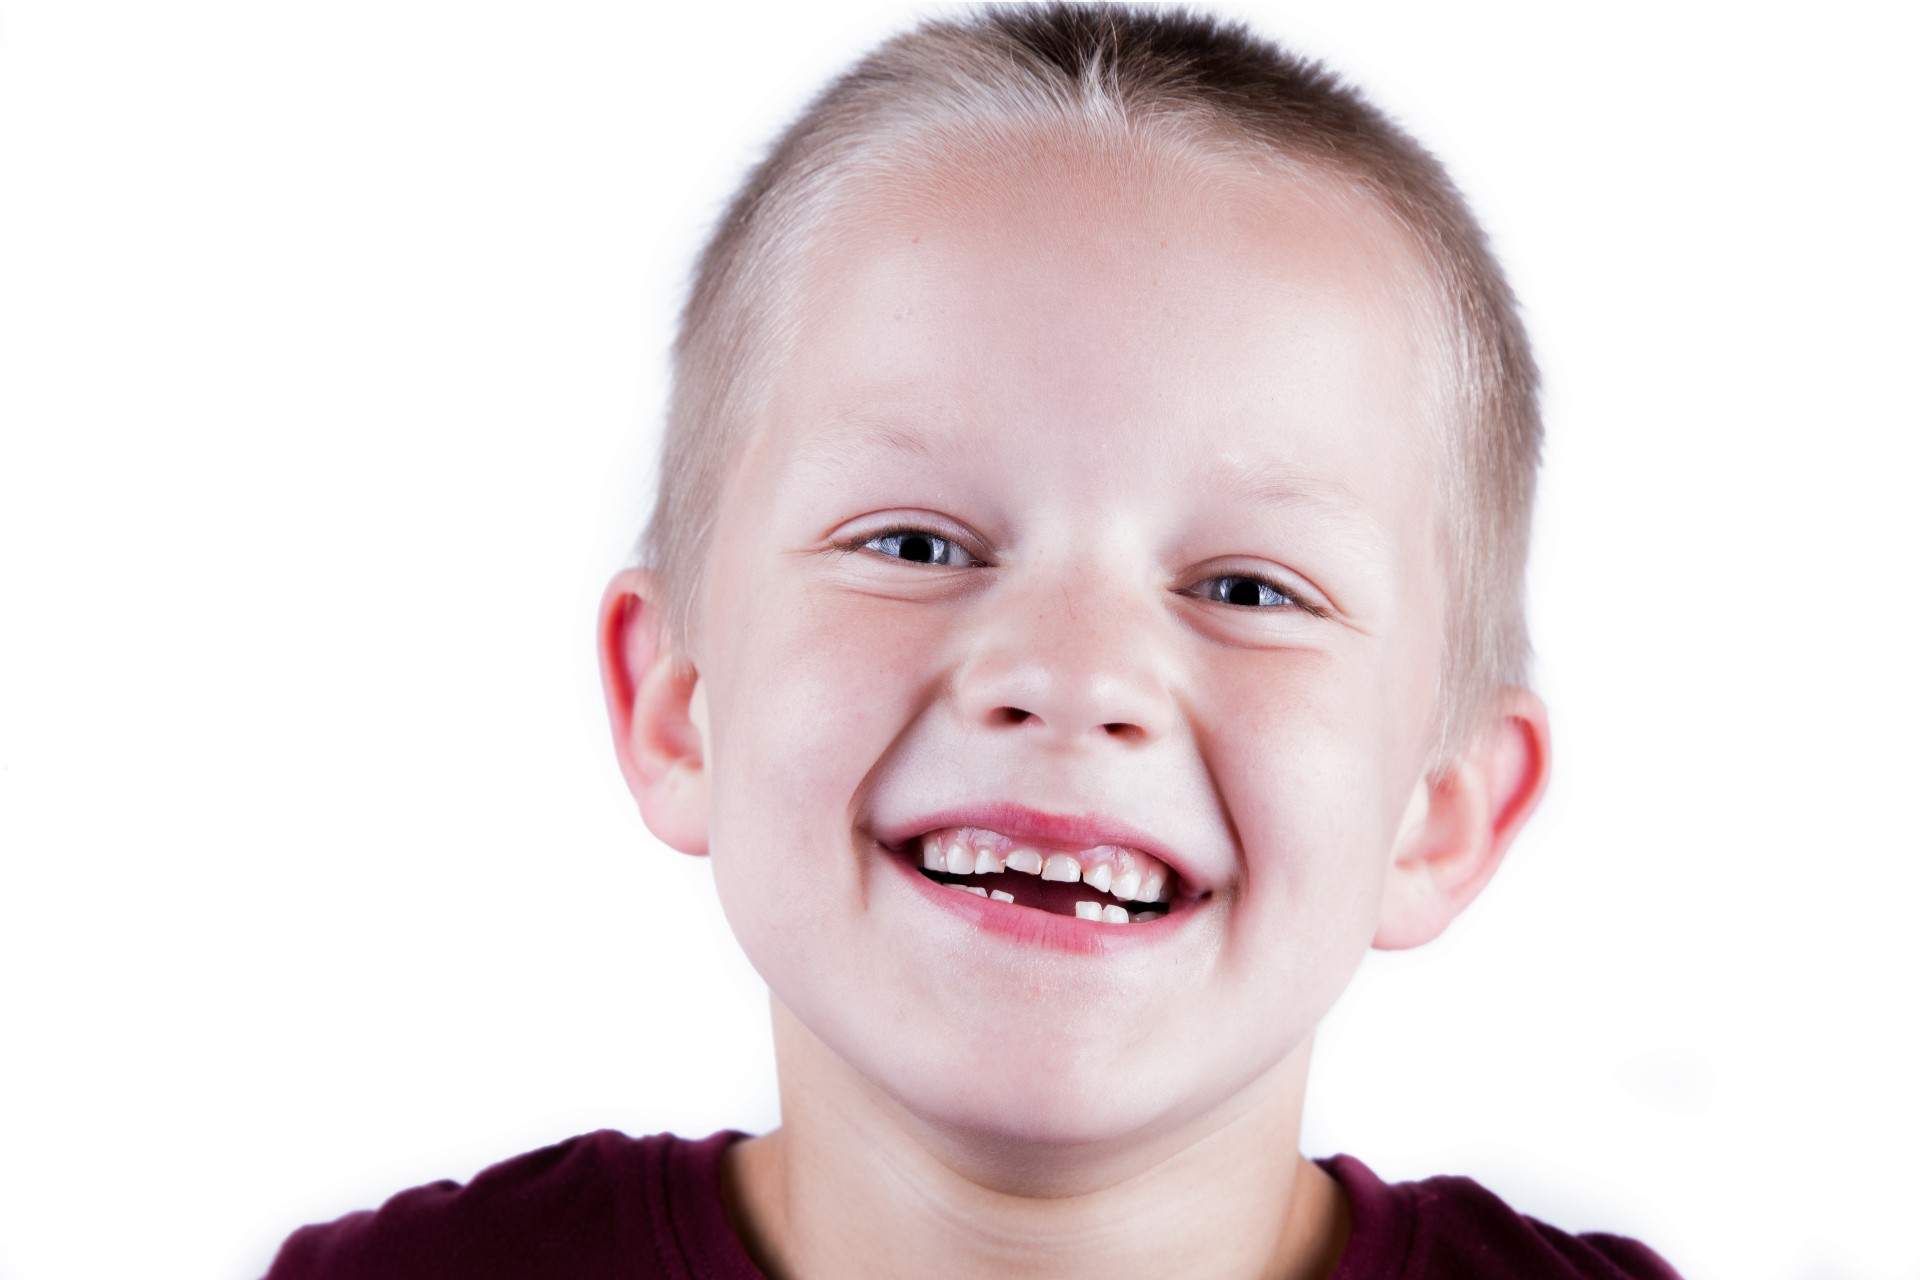 smiling-toothless-boy-on-white-back